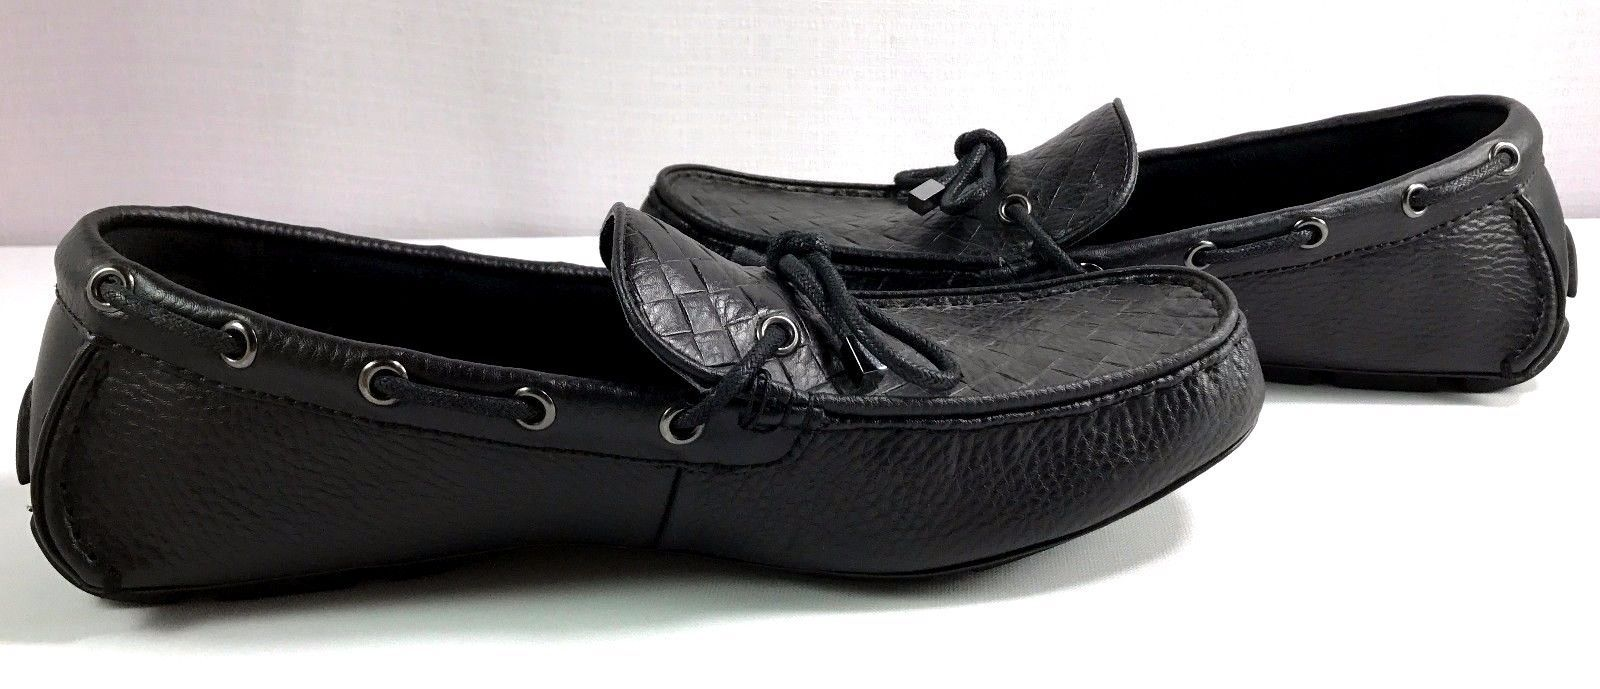 65b209c194a Mens Alfani Warren Black Leather Driver Loafers Size 10 M Slip On Shoes